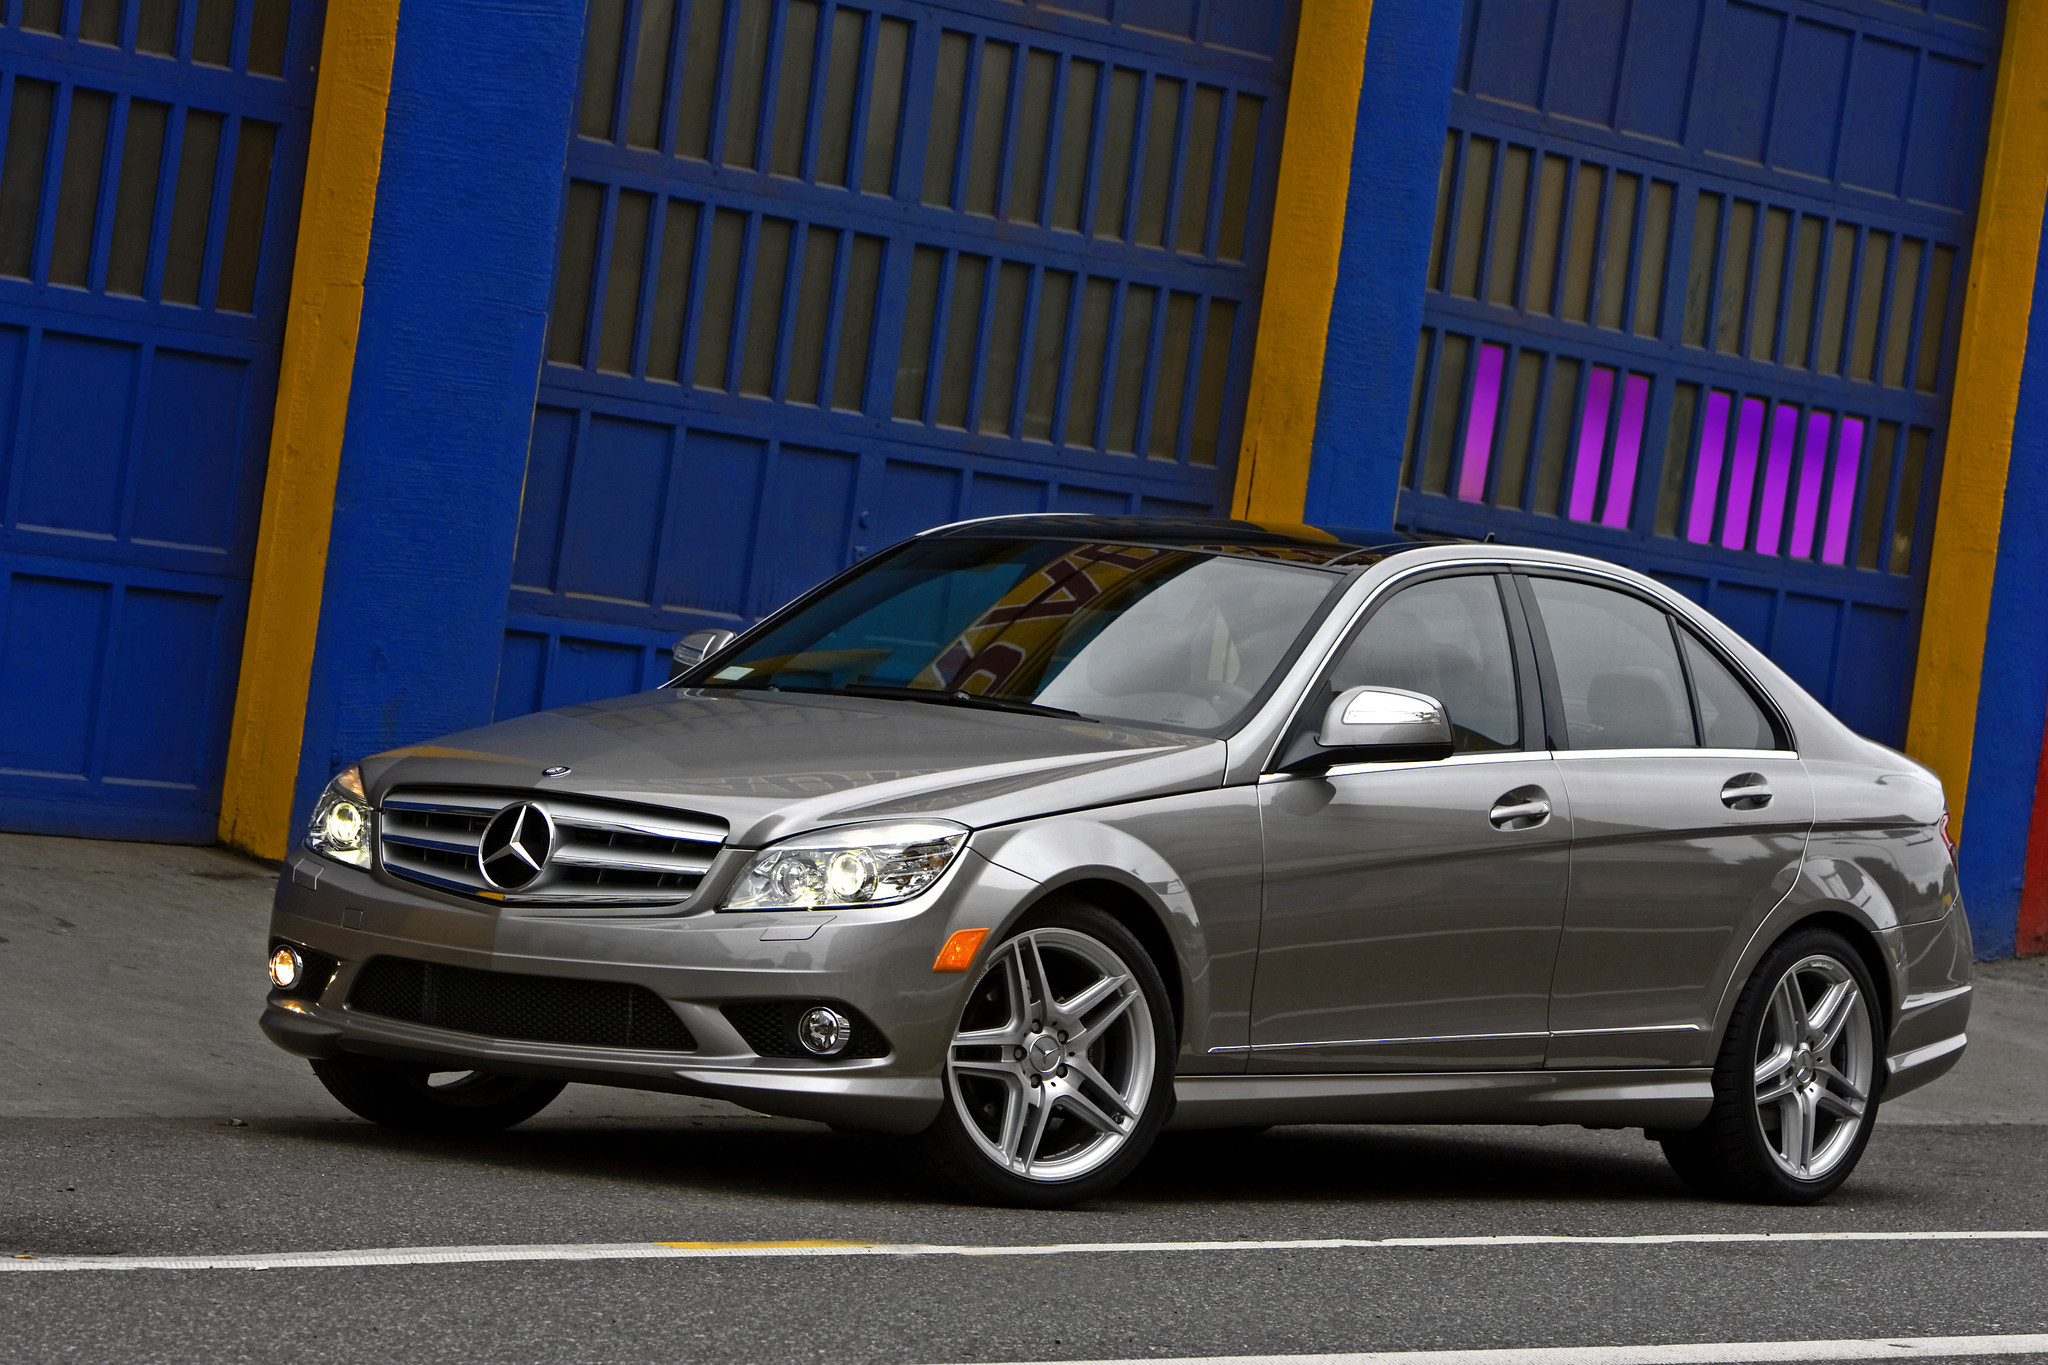 mercedes benz recalls 284 000 c class cars in u s and canada la times. Black Bedroom Furniture Sets. Home Design Ideas